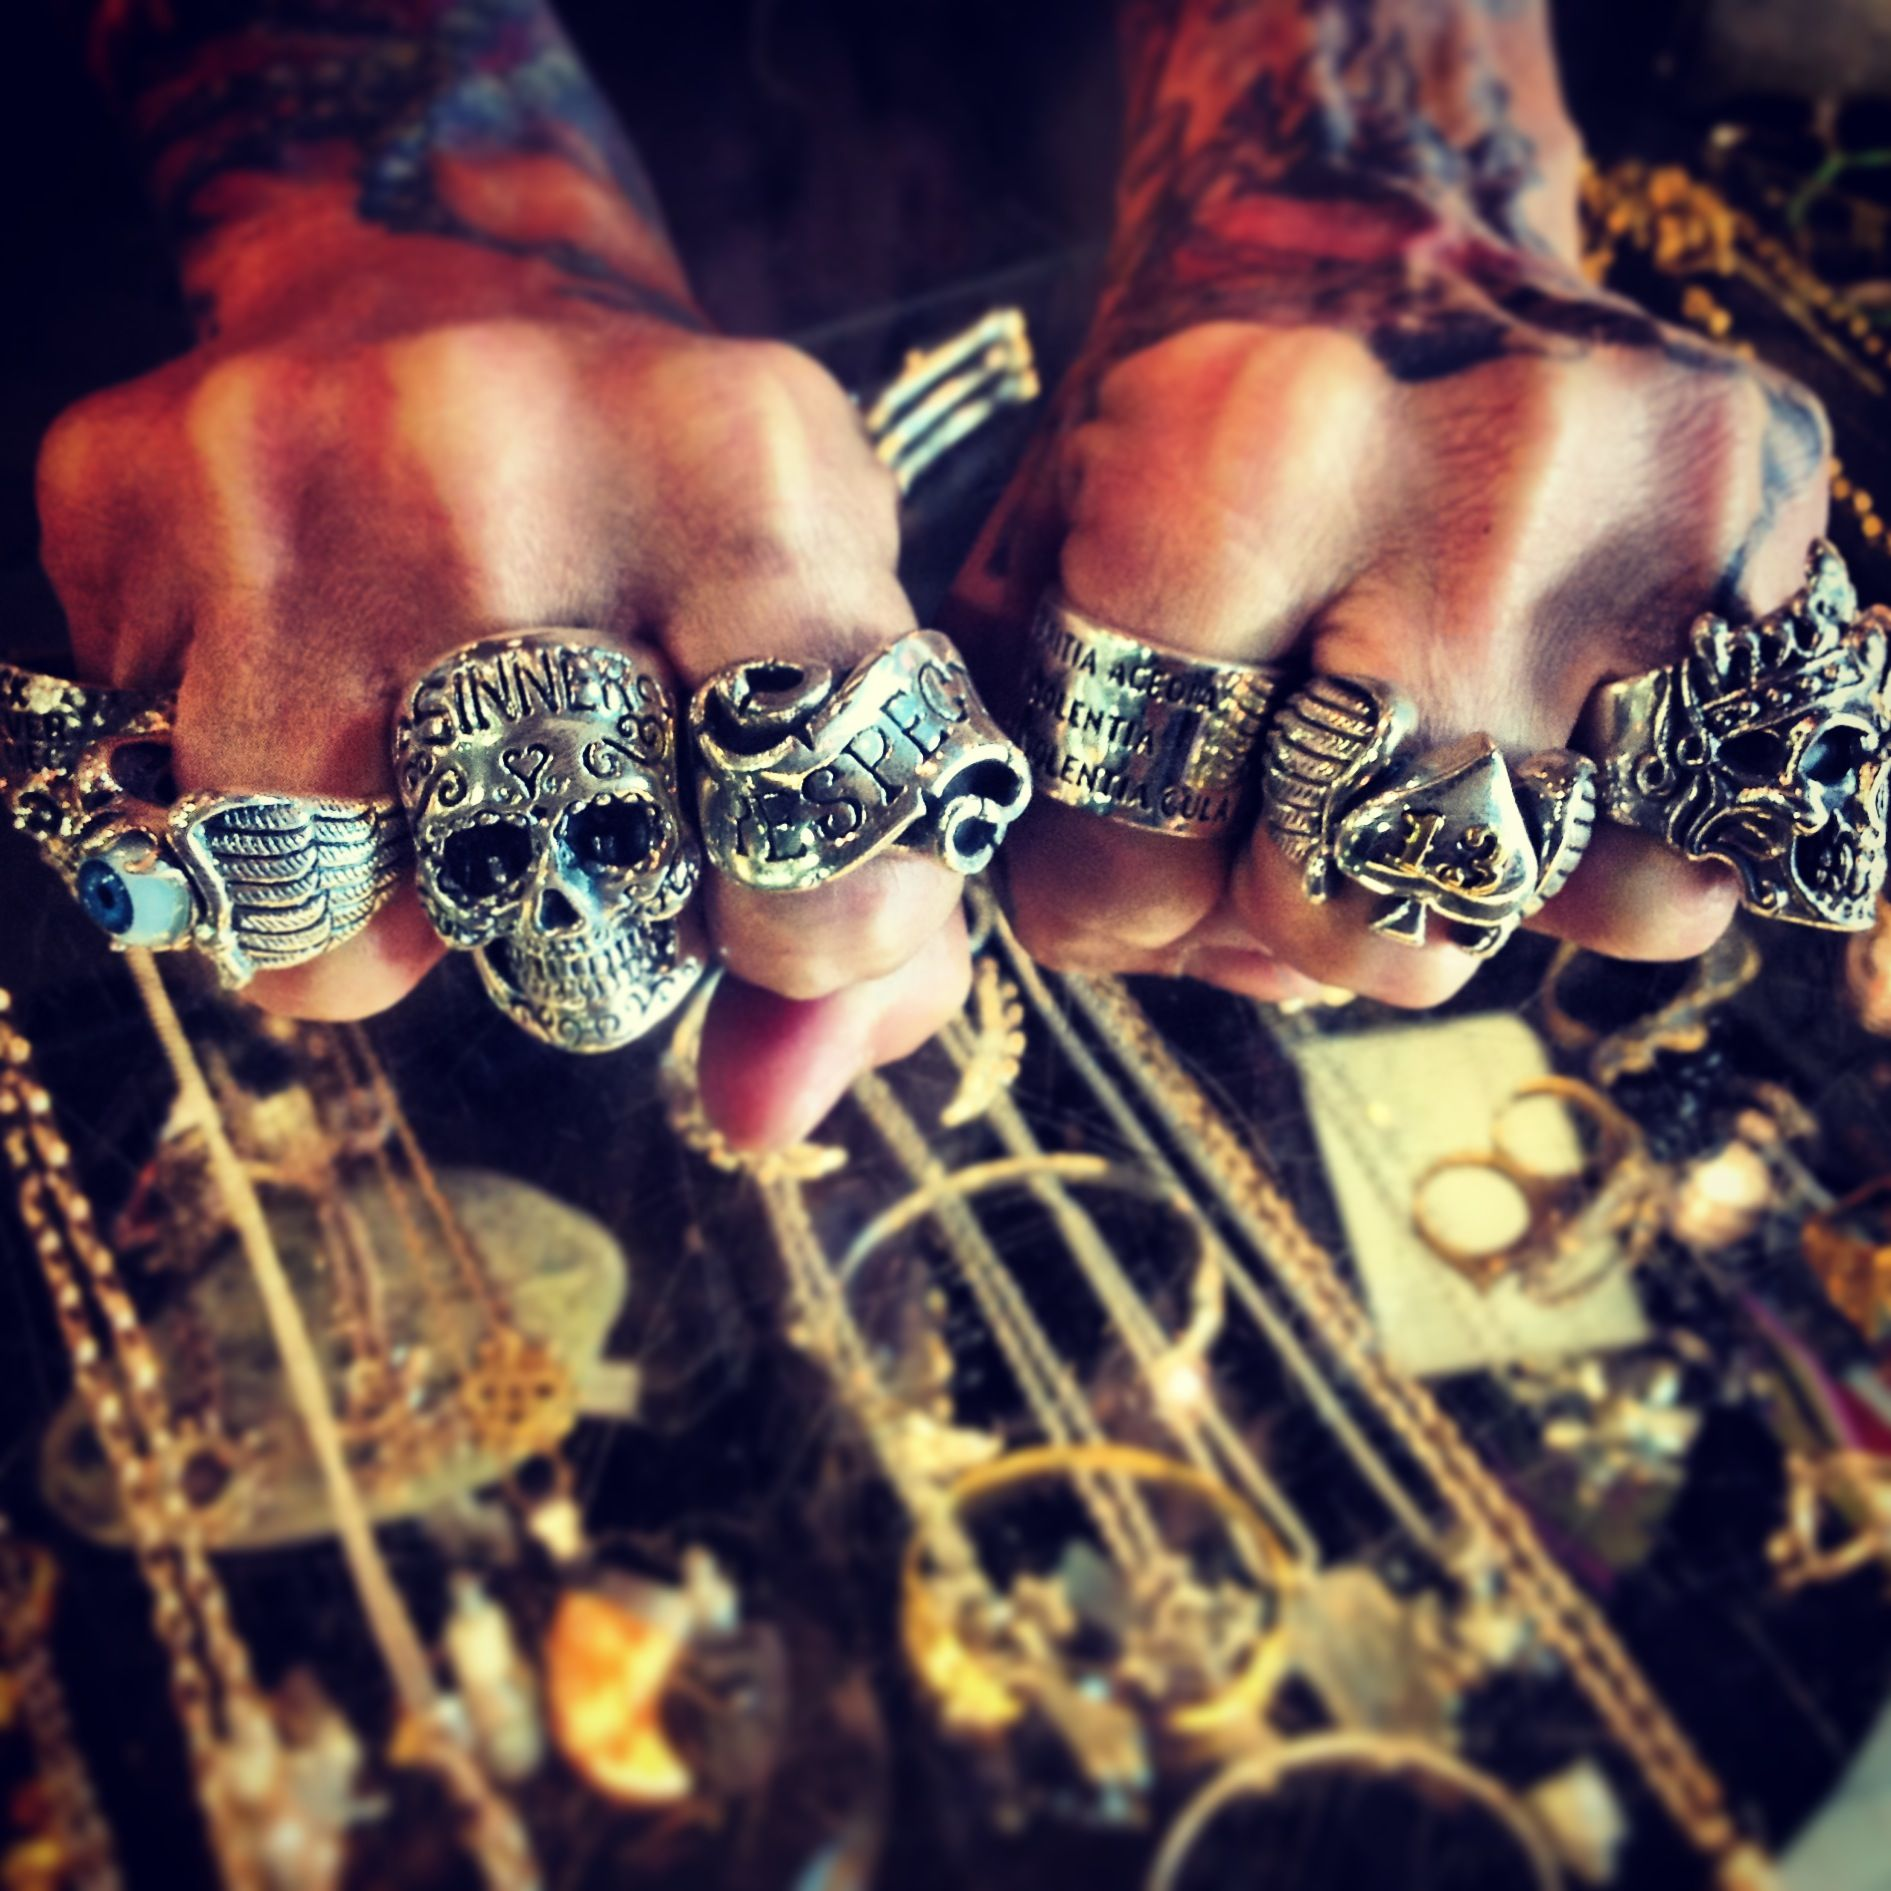 Hand casted sterling Rock and Roll jewelry. www.ForgottenSaintsla.com